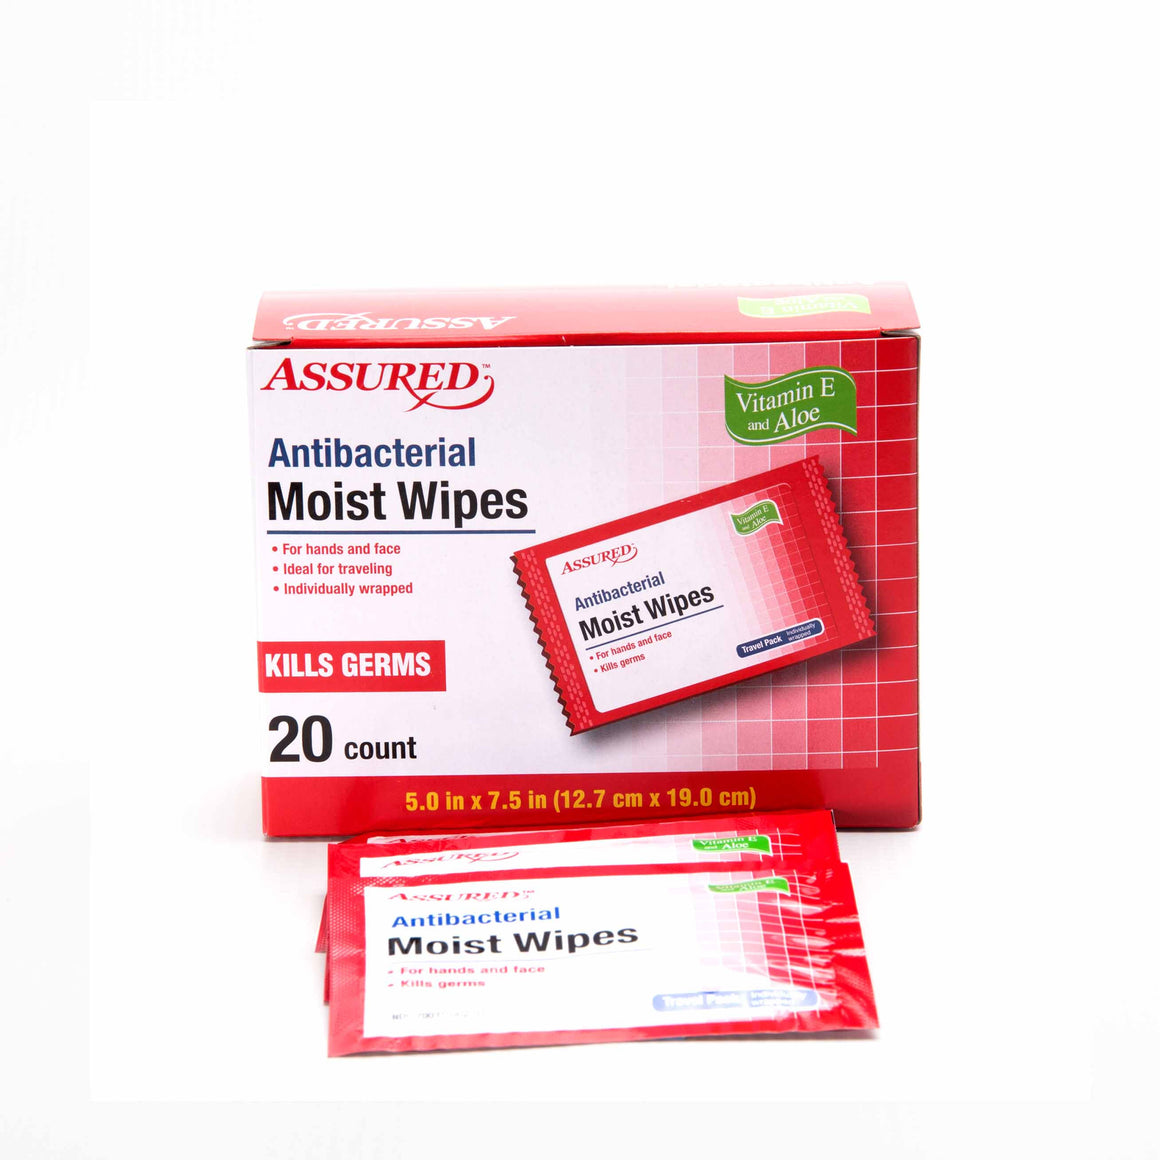 Antibacterial Moist Wipes product image - included with Dr. Don's Care Packages Get Well Soon Care Package.